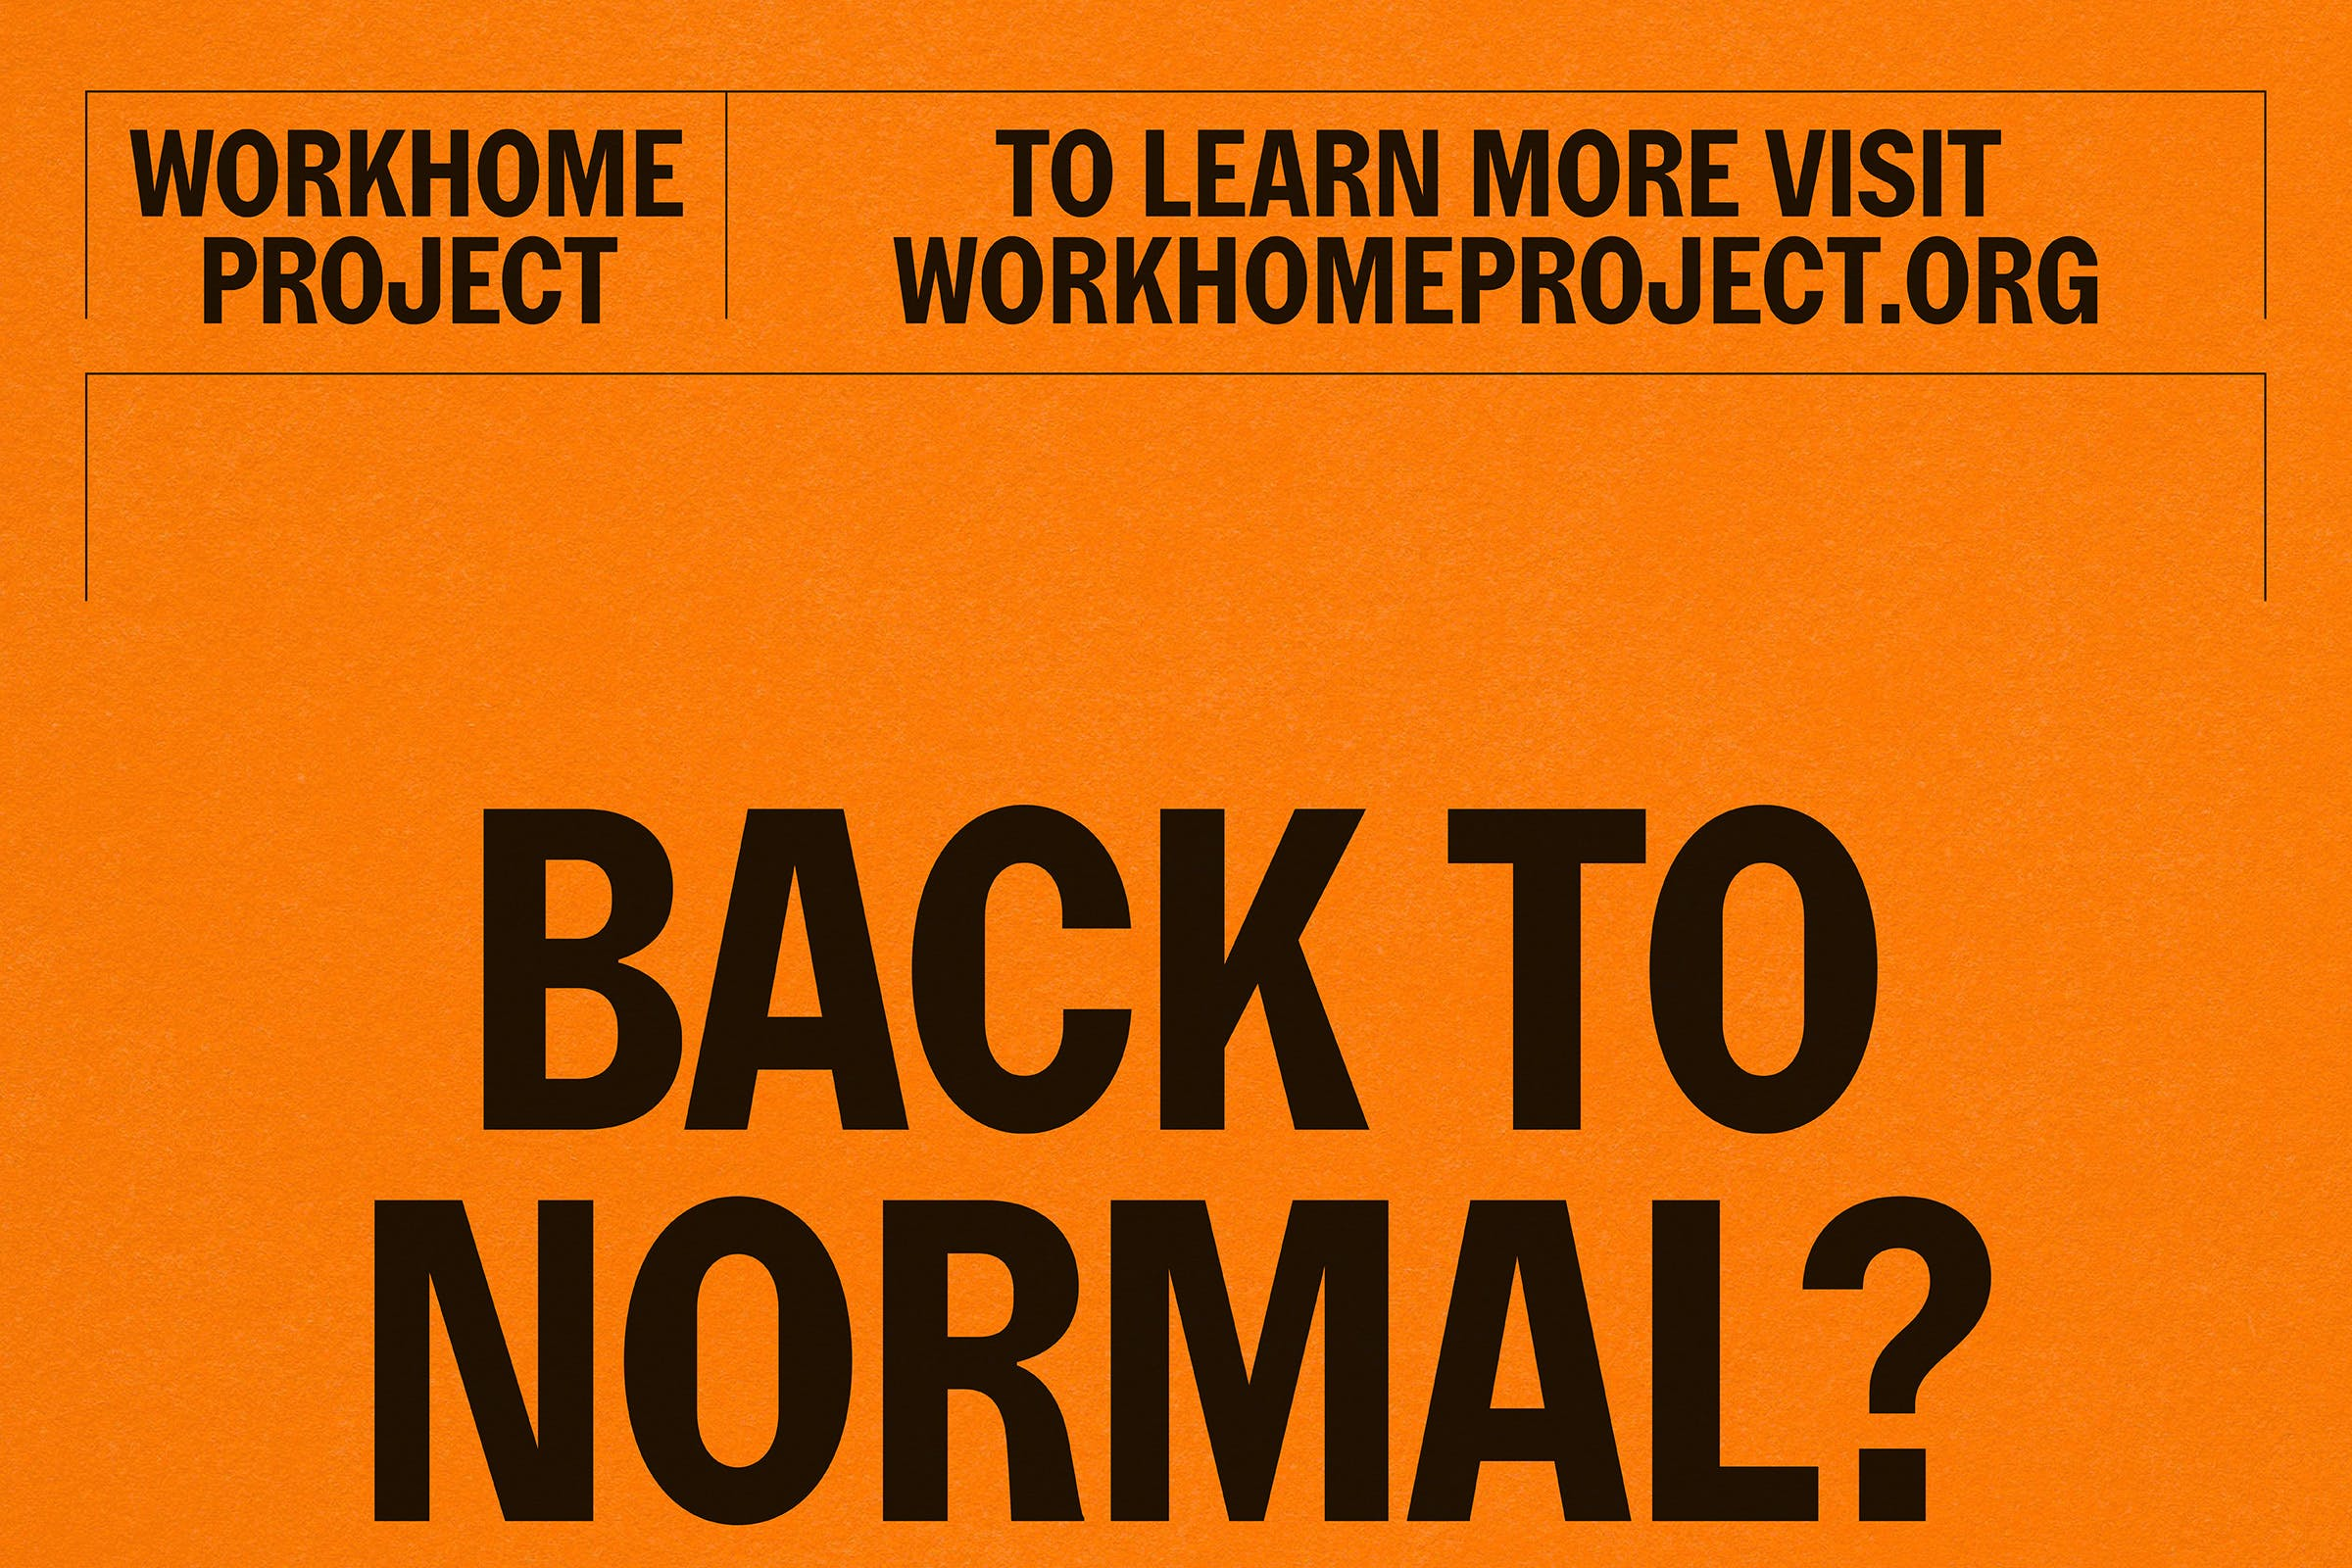 Workhome Project, identity, Graphic Design by Wolfe Hall